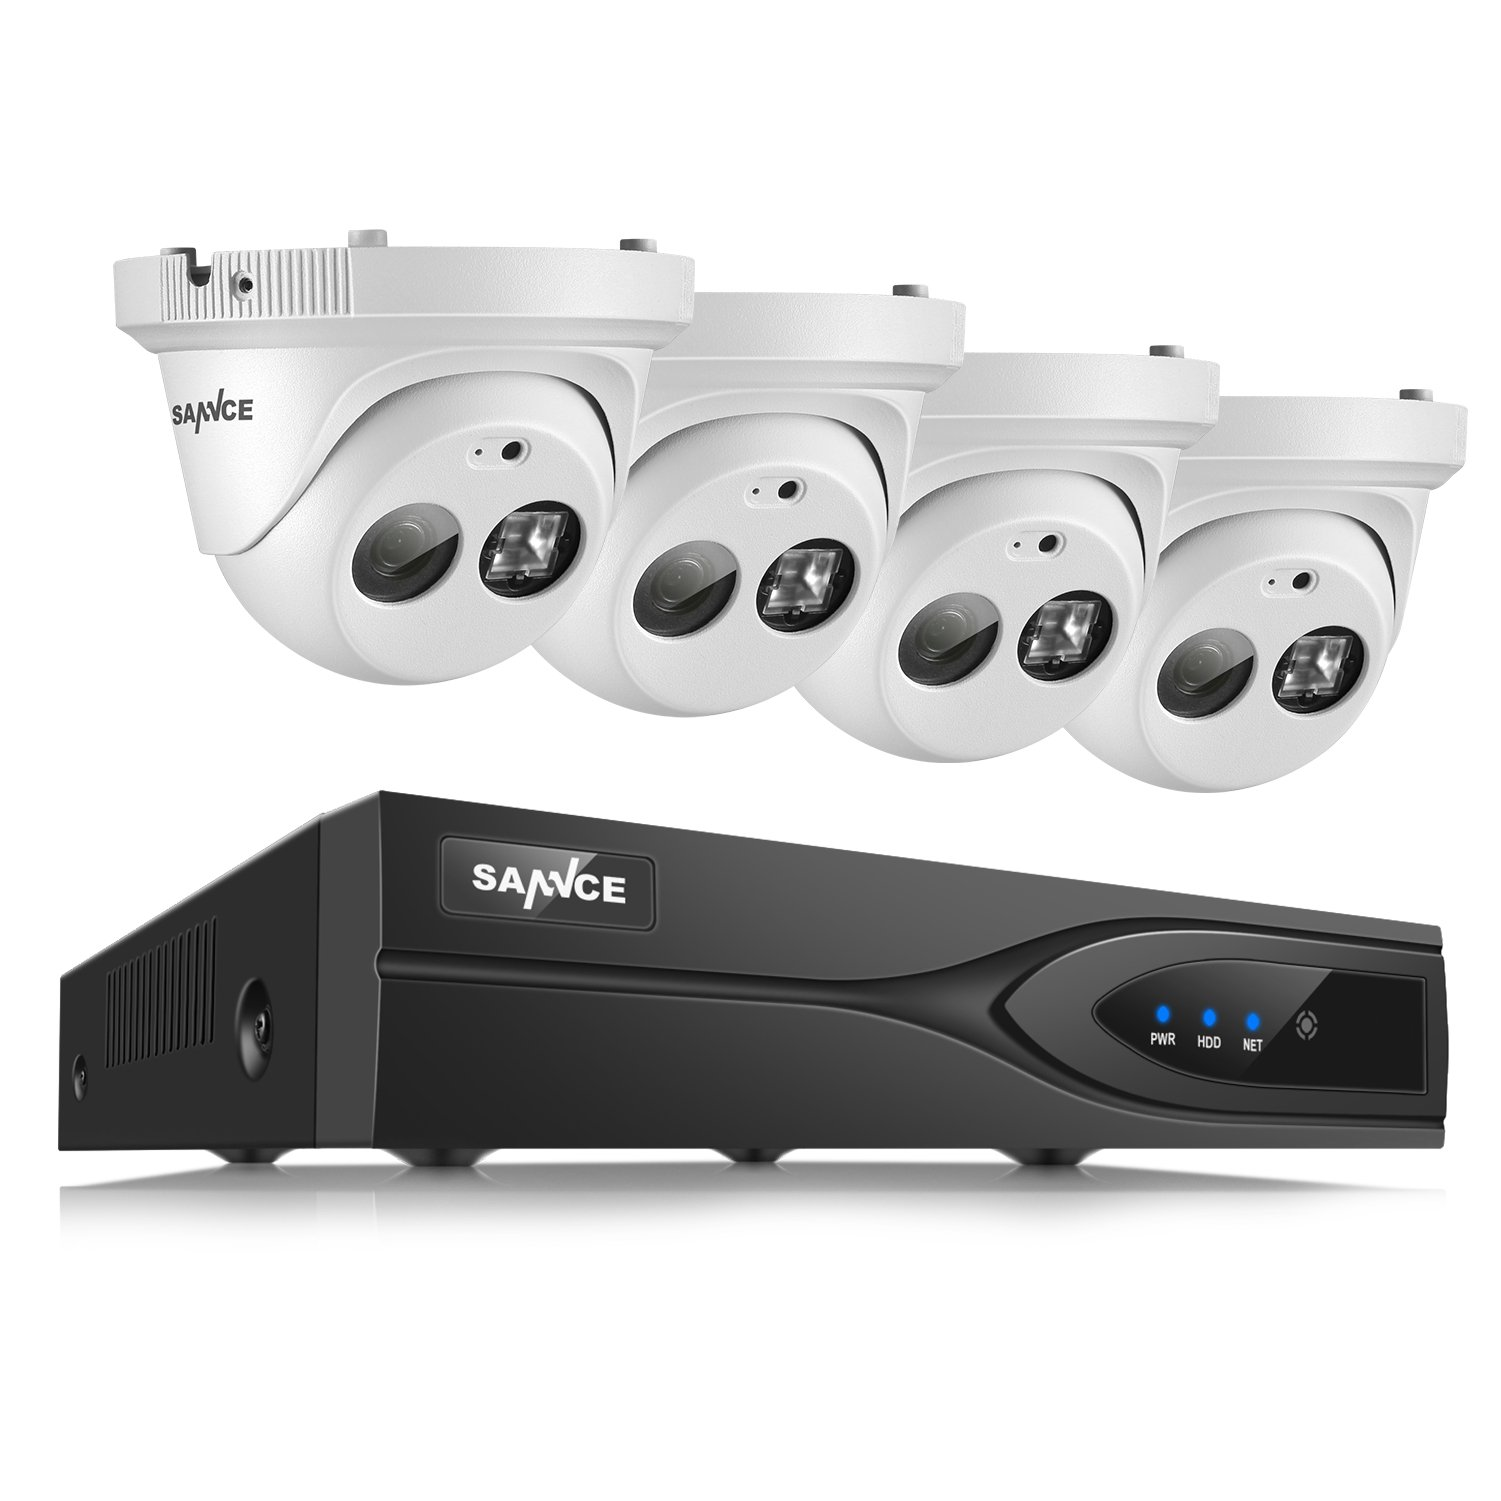 SANNCE 8 CH 1080P POE NVR Security Camera System and 1080P IP Camera 2MP HD Mini Dome Network Camera with Built-in Microphone for Clear Audio Array LED for 100ft/30m night vision